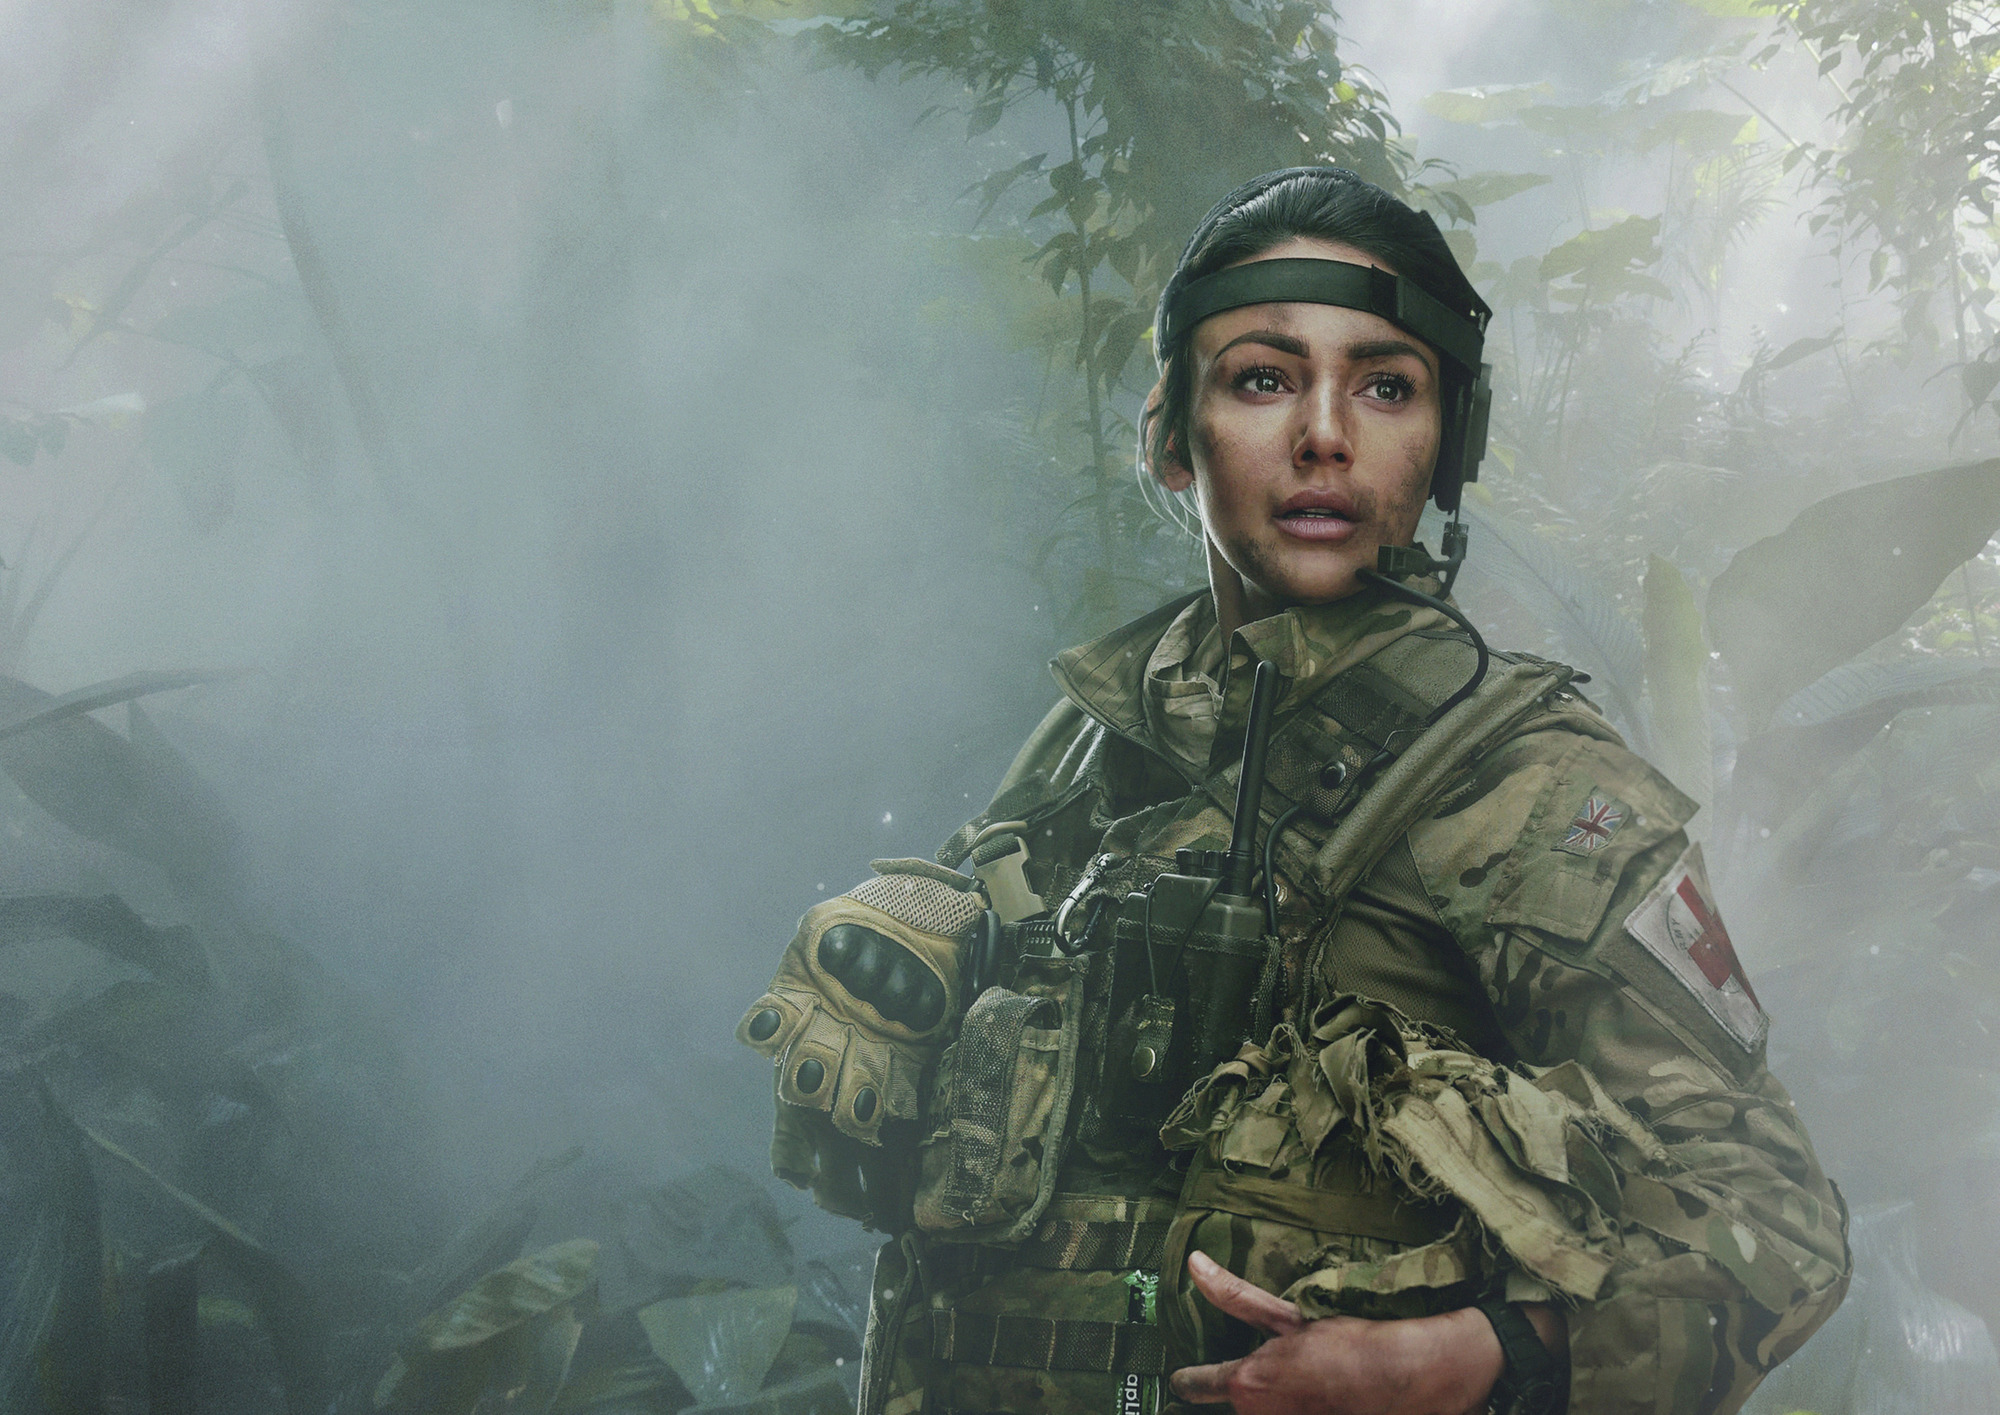 Michelle Keegan confirms she's finished filming Our Girl with behind-the-scenes photo